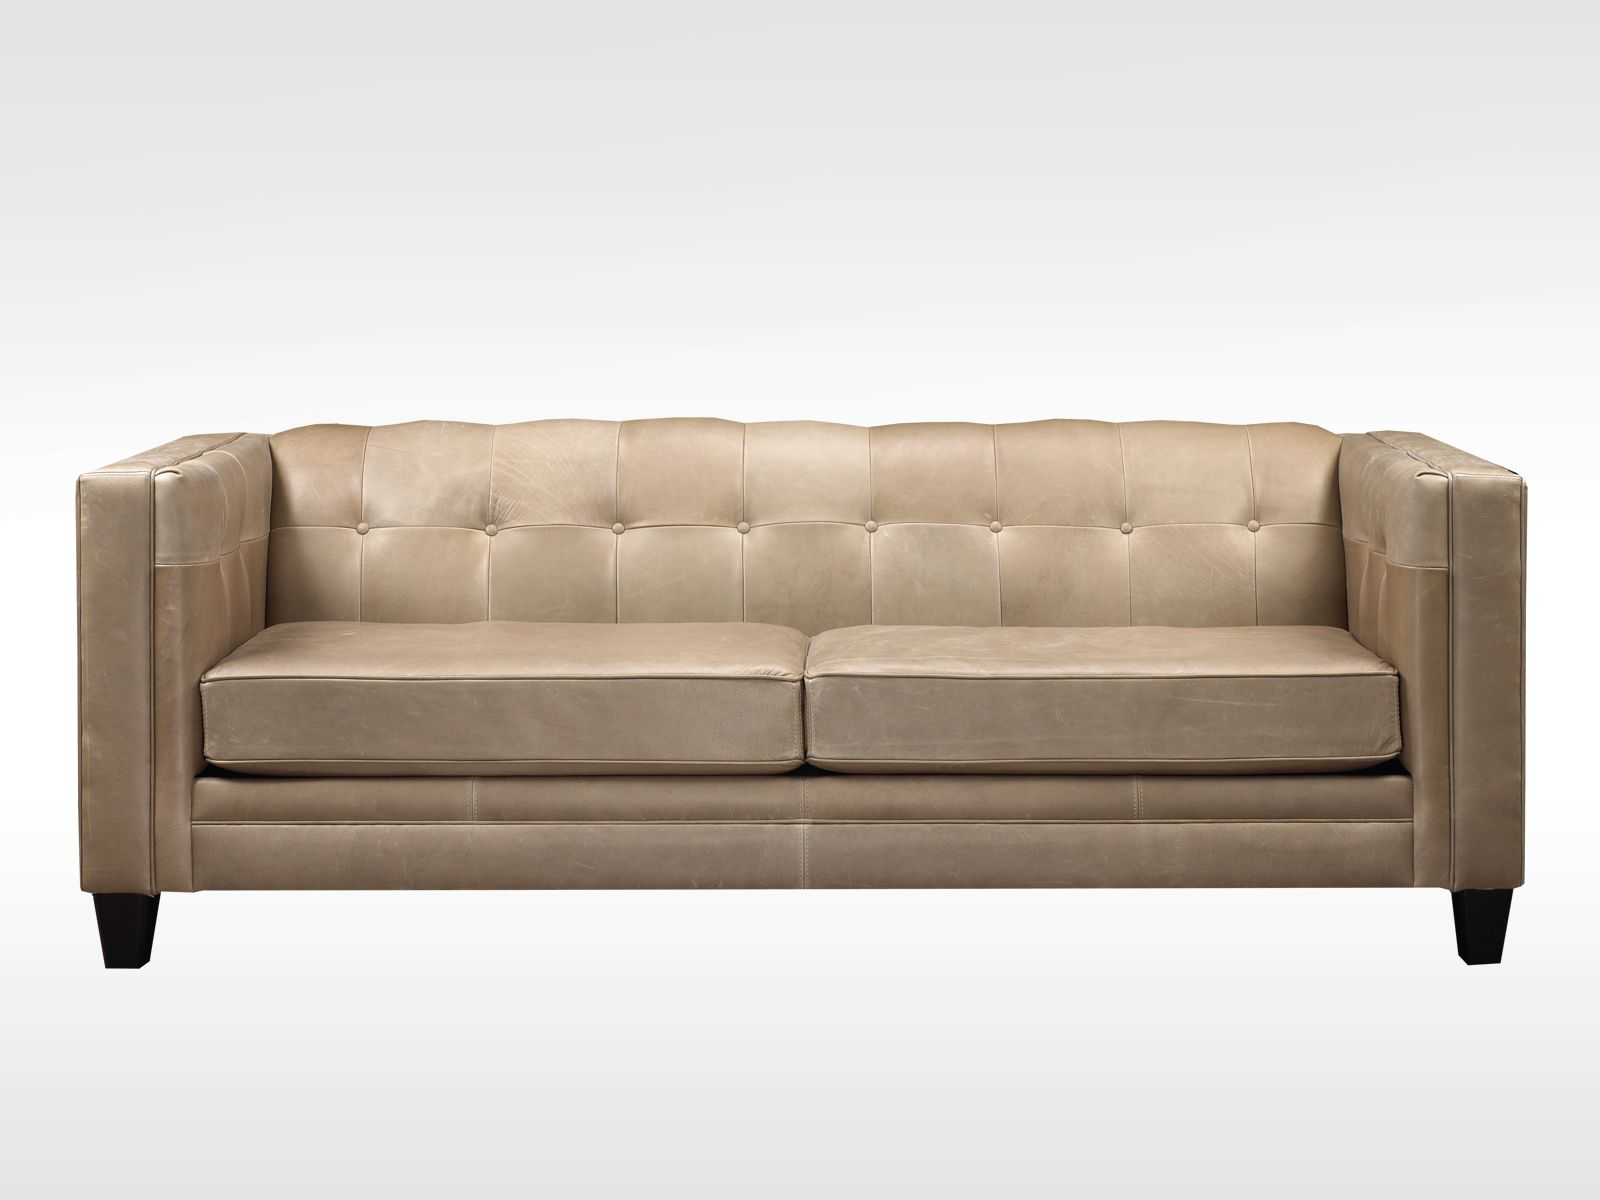 Sofas | Brentwood Classics, Available At Chattels Furniture Www.  Chattelsfurniture.com